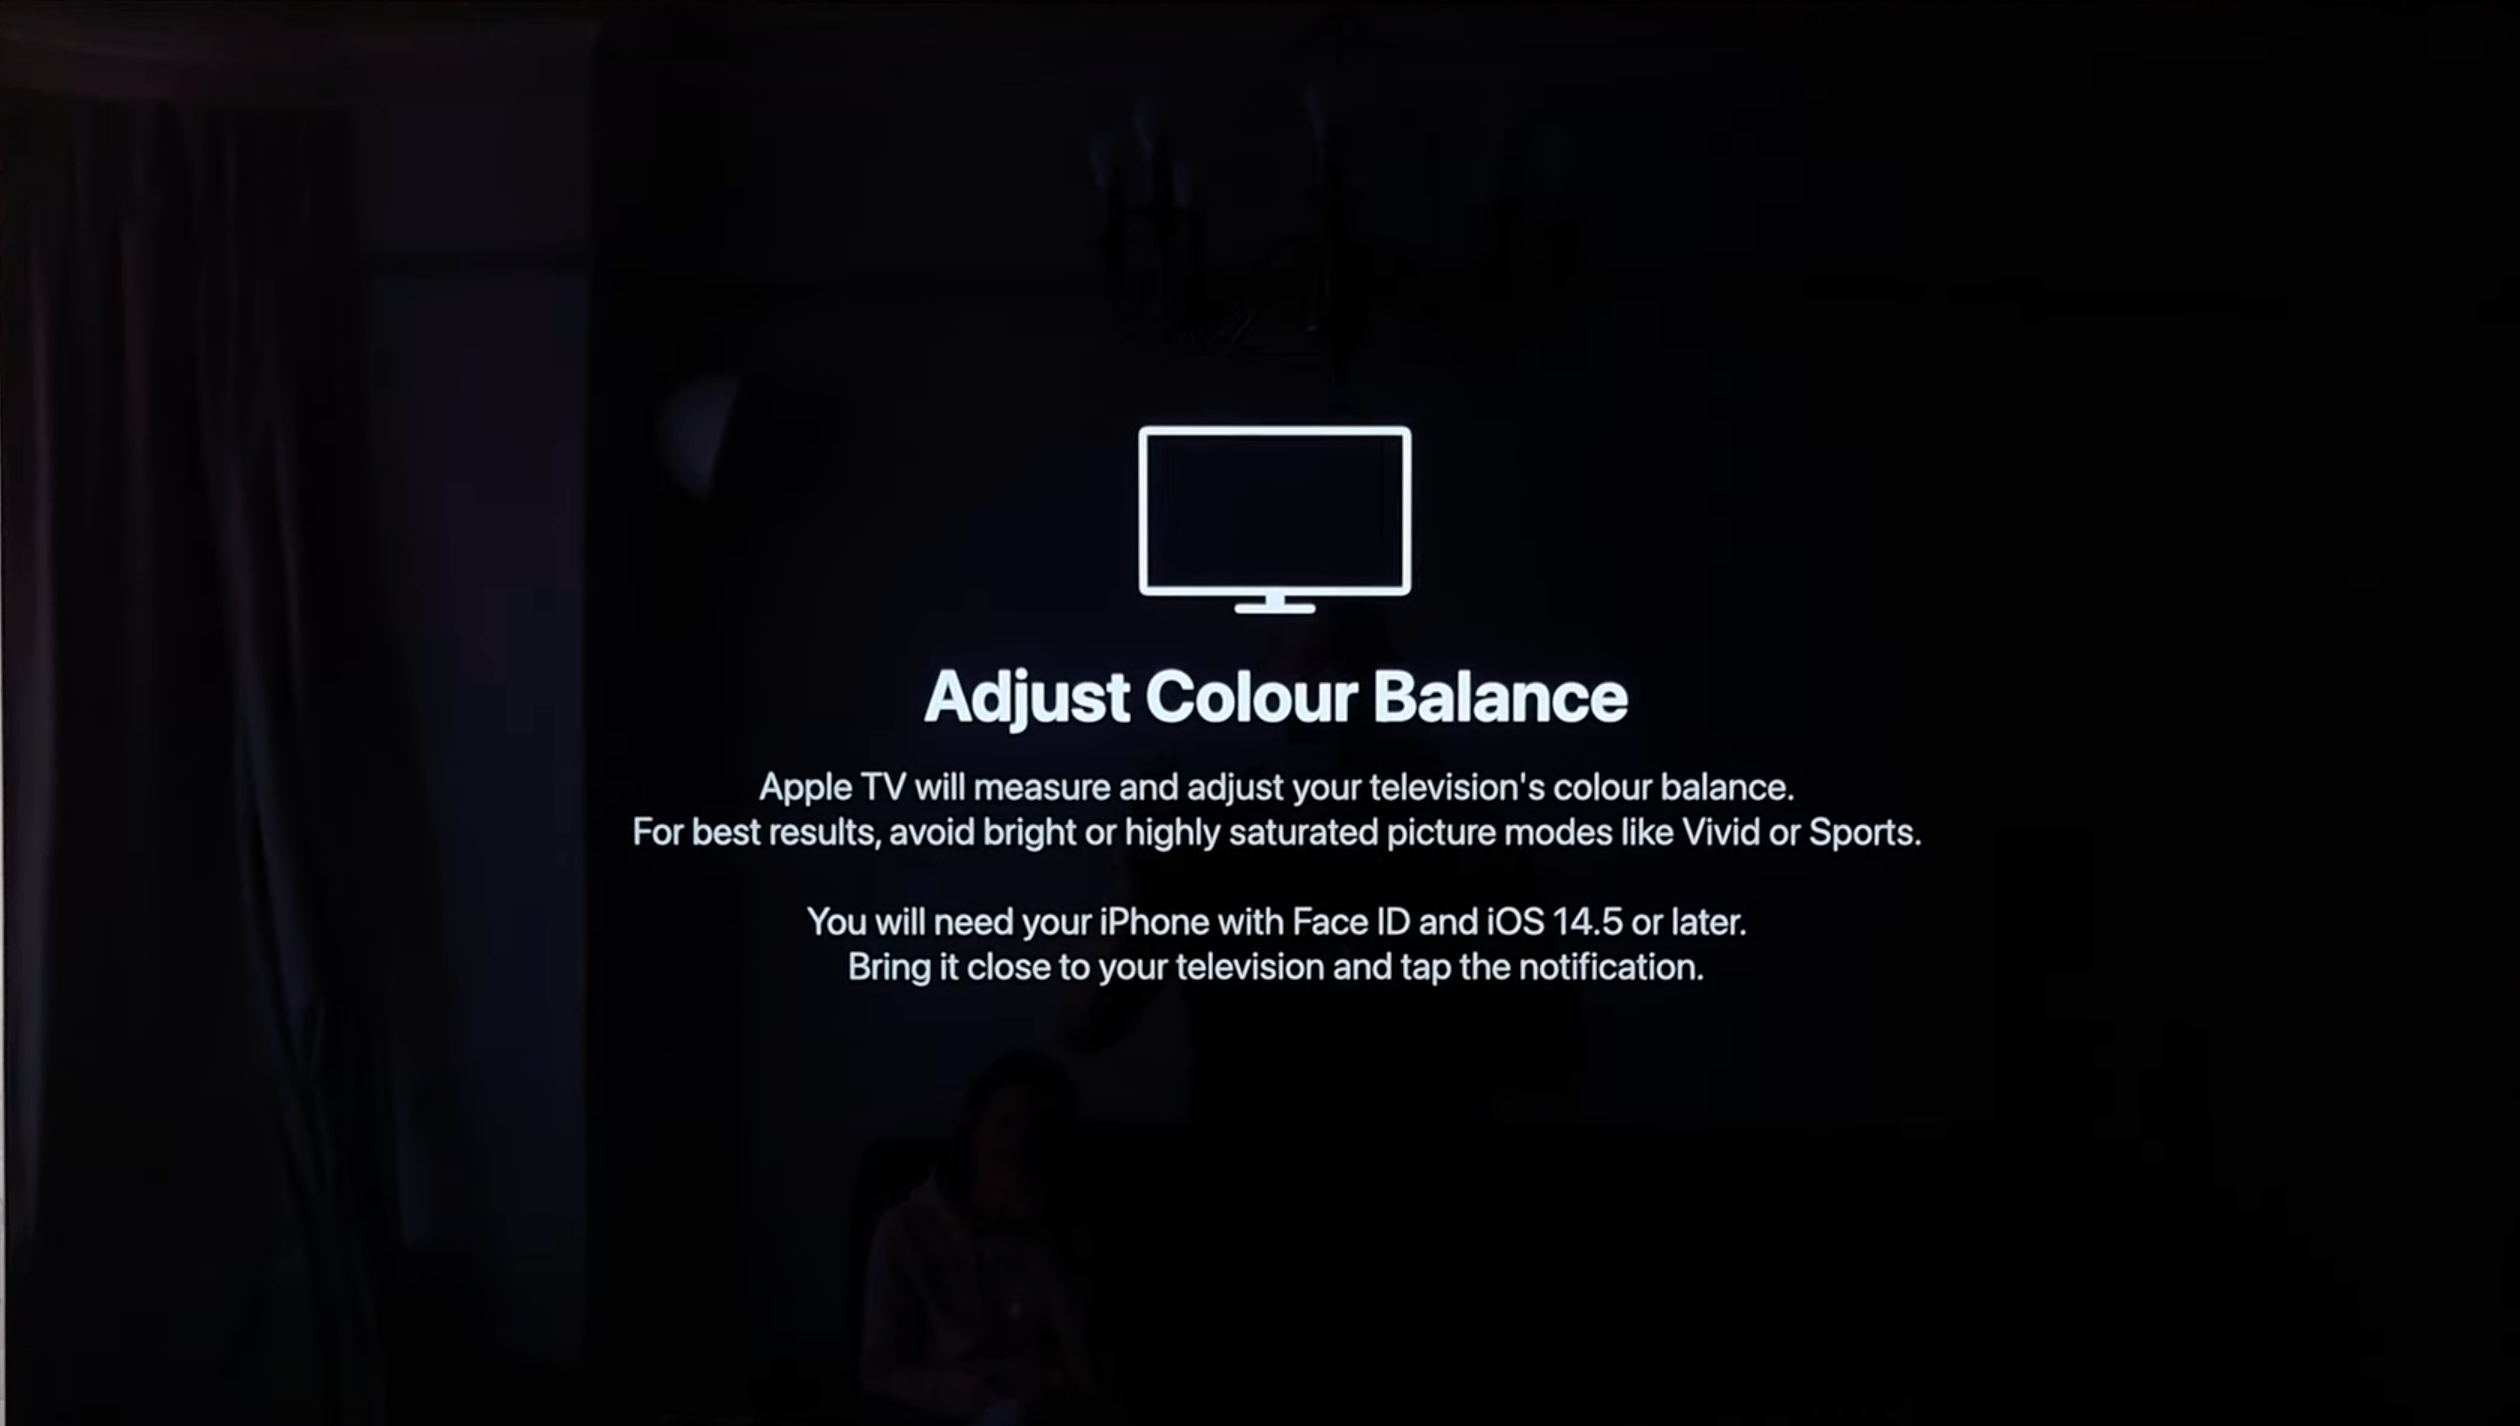 How to Use an iPhone to Calibrate Apple TV Colors